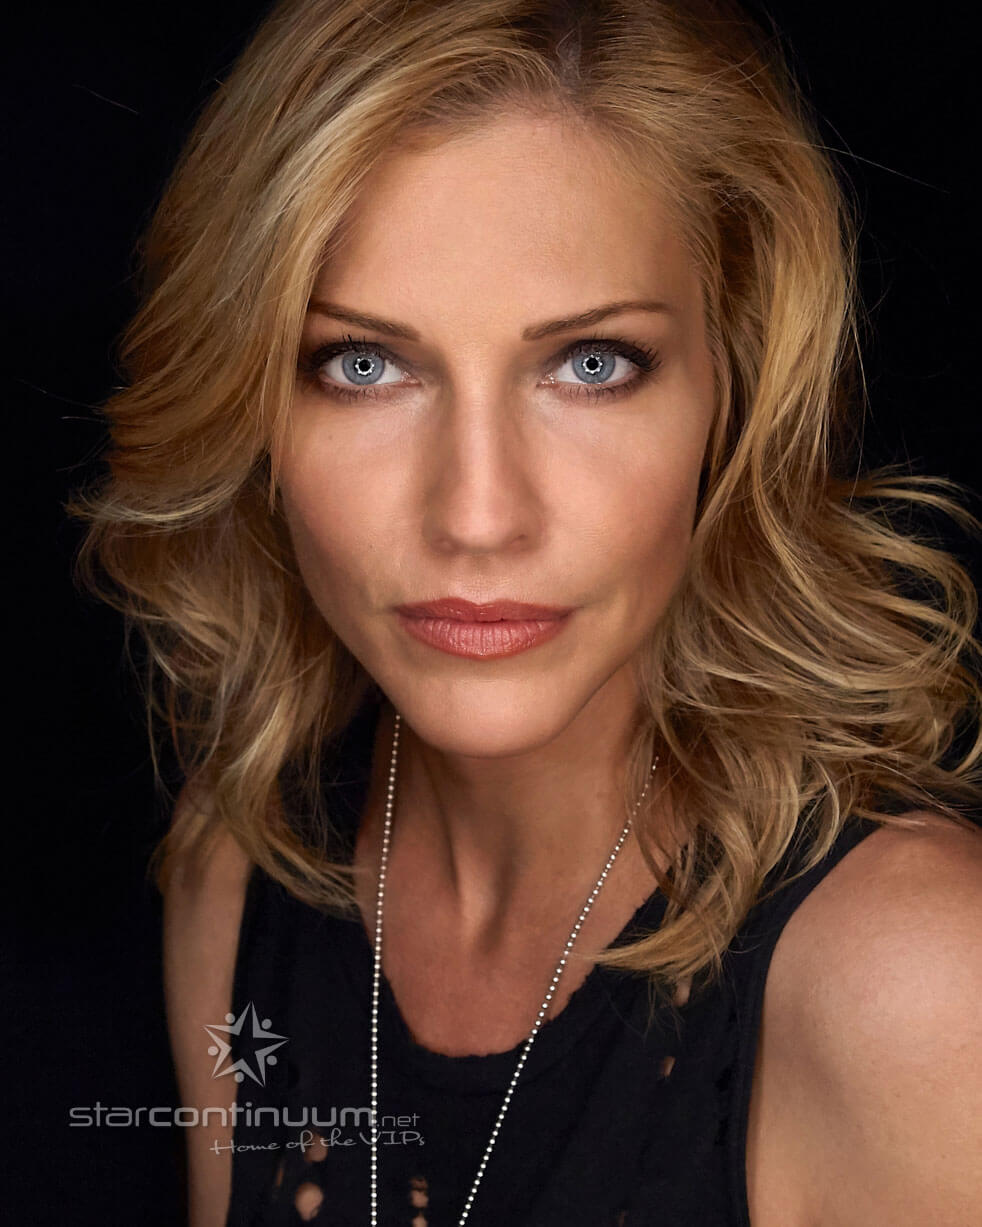 starcontinuum.net | Faces | Tricia Helfer